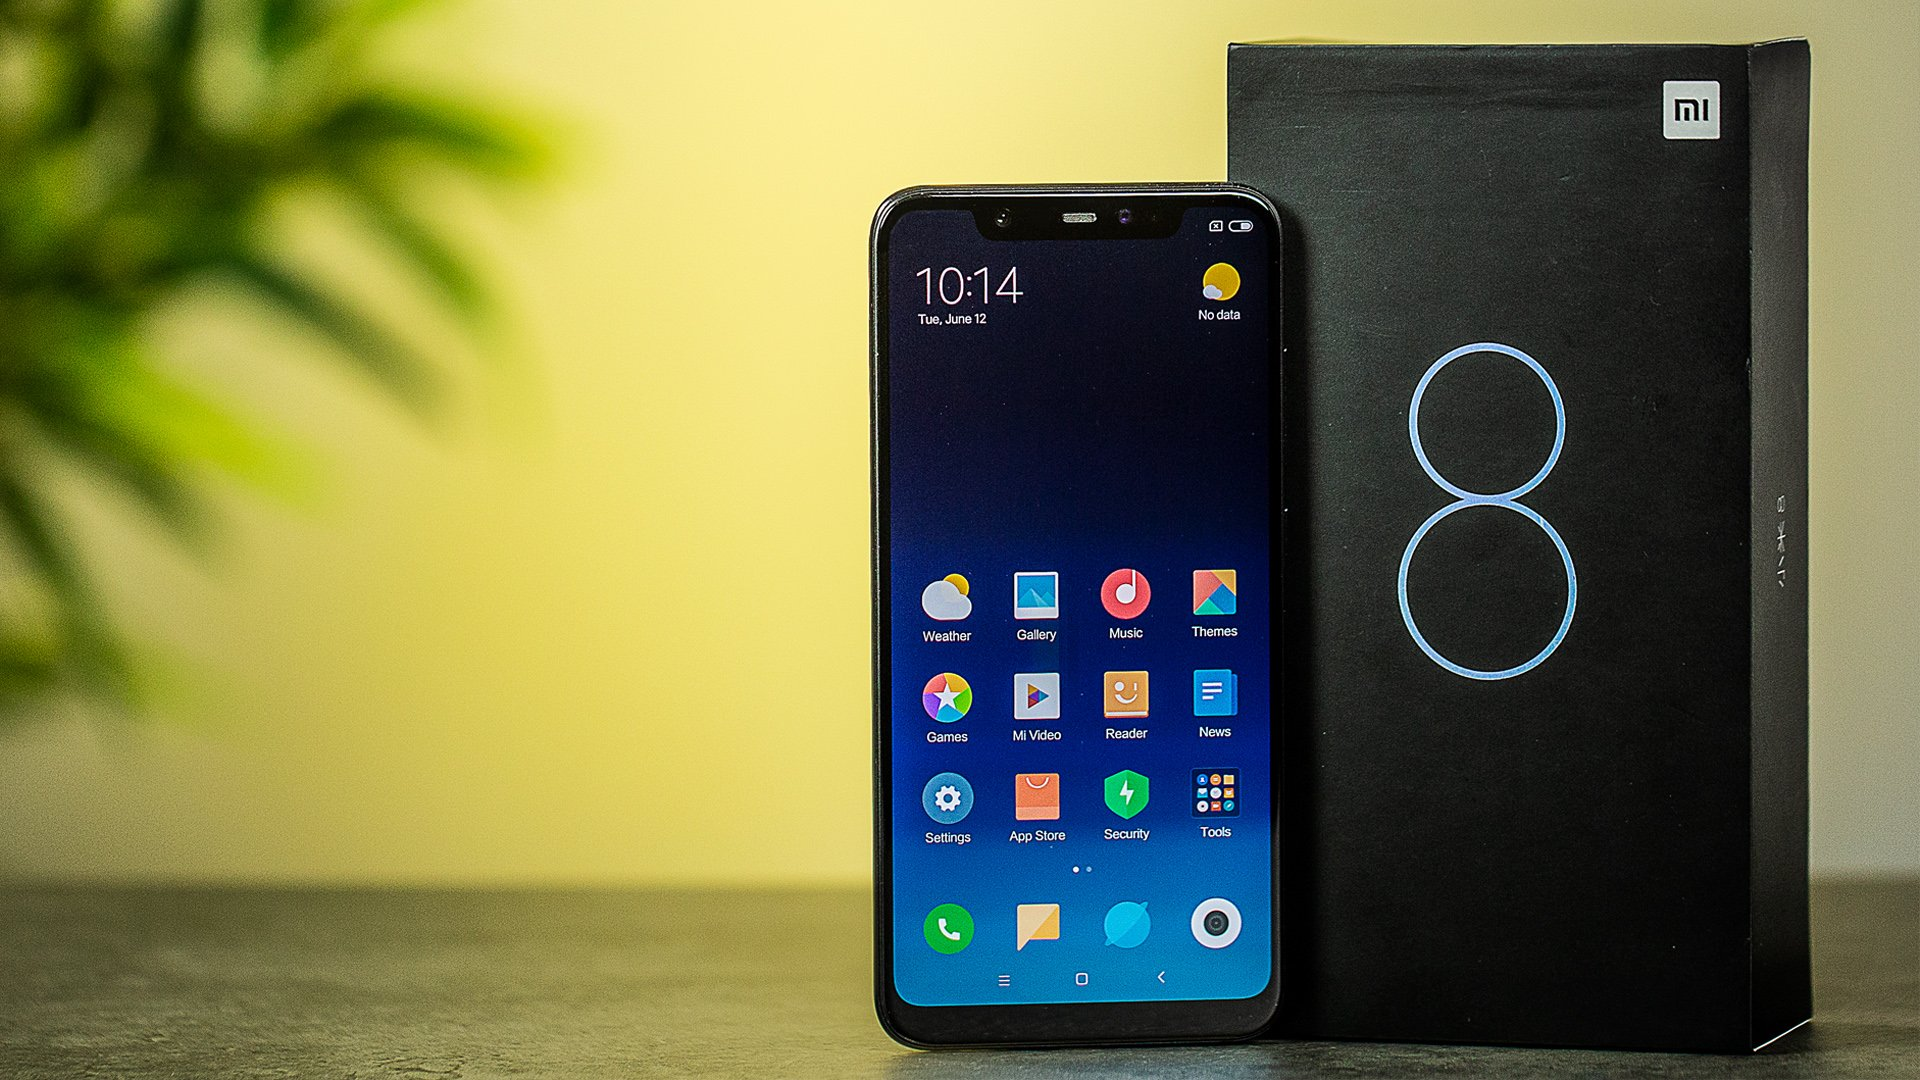 Dual kamera oder power xiaomi redmi s vs redmi plus